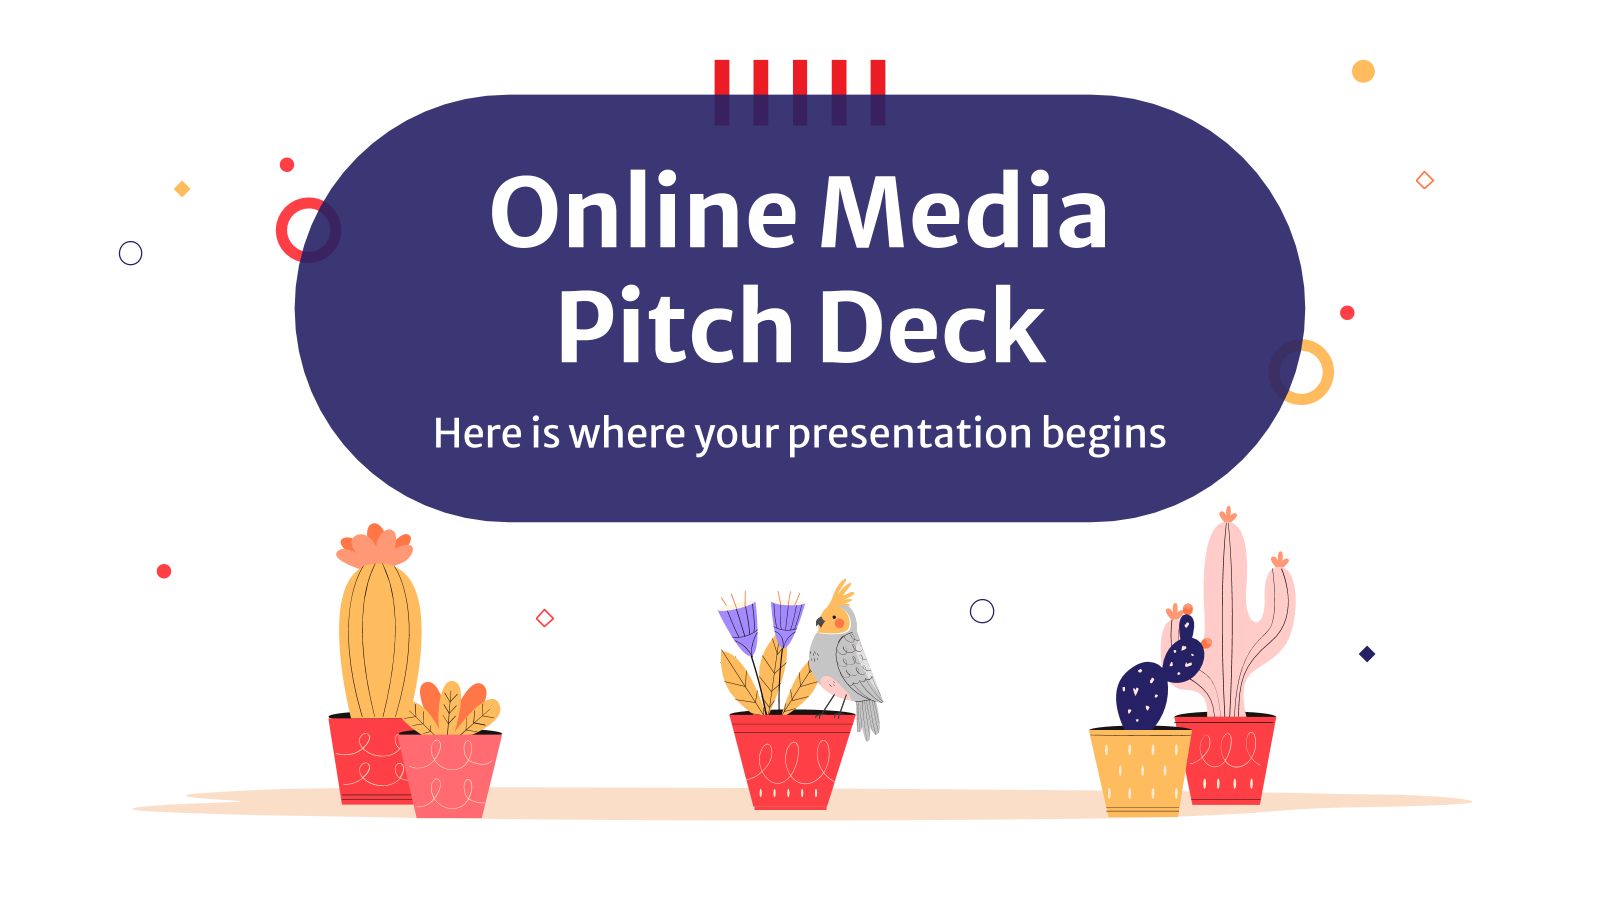 Plantilla de presentación Pitch deck para medio digital